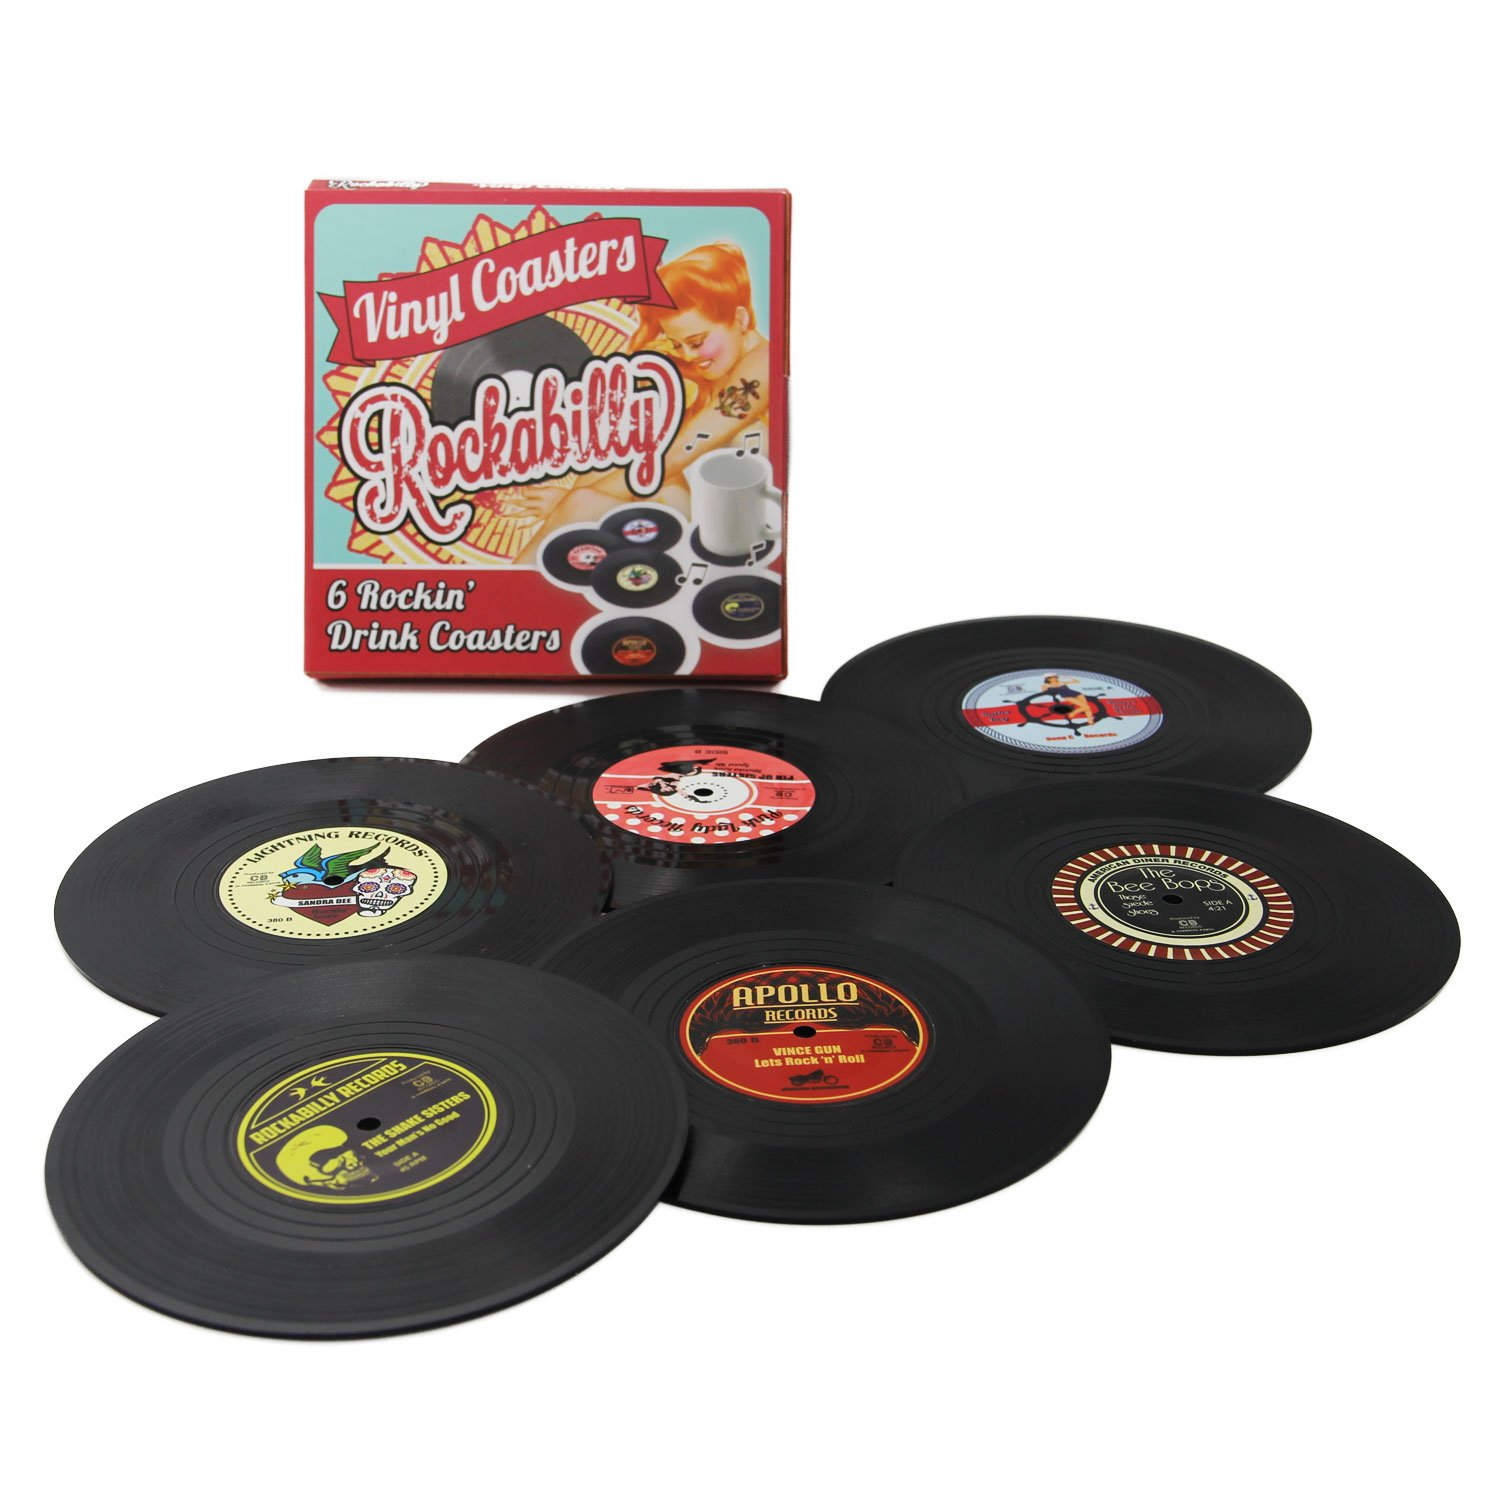 Coasters Set of 6 Colorful Retro Vinyl Record Disk Coaster for Drinks with Funny Labels - Desktop Protection Prevents Furniture Damage - Tabletop Drink Coasters